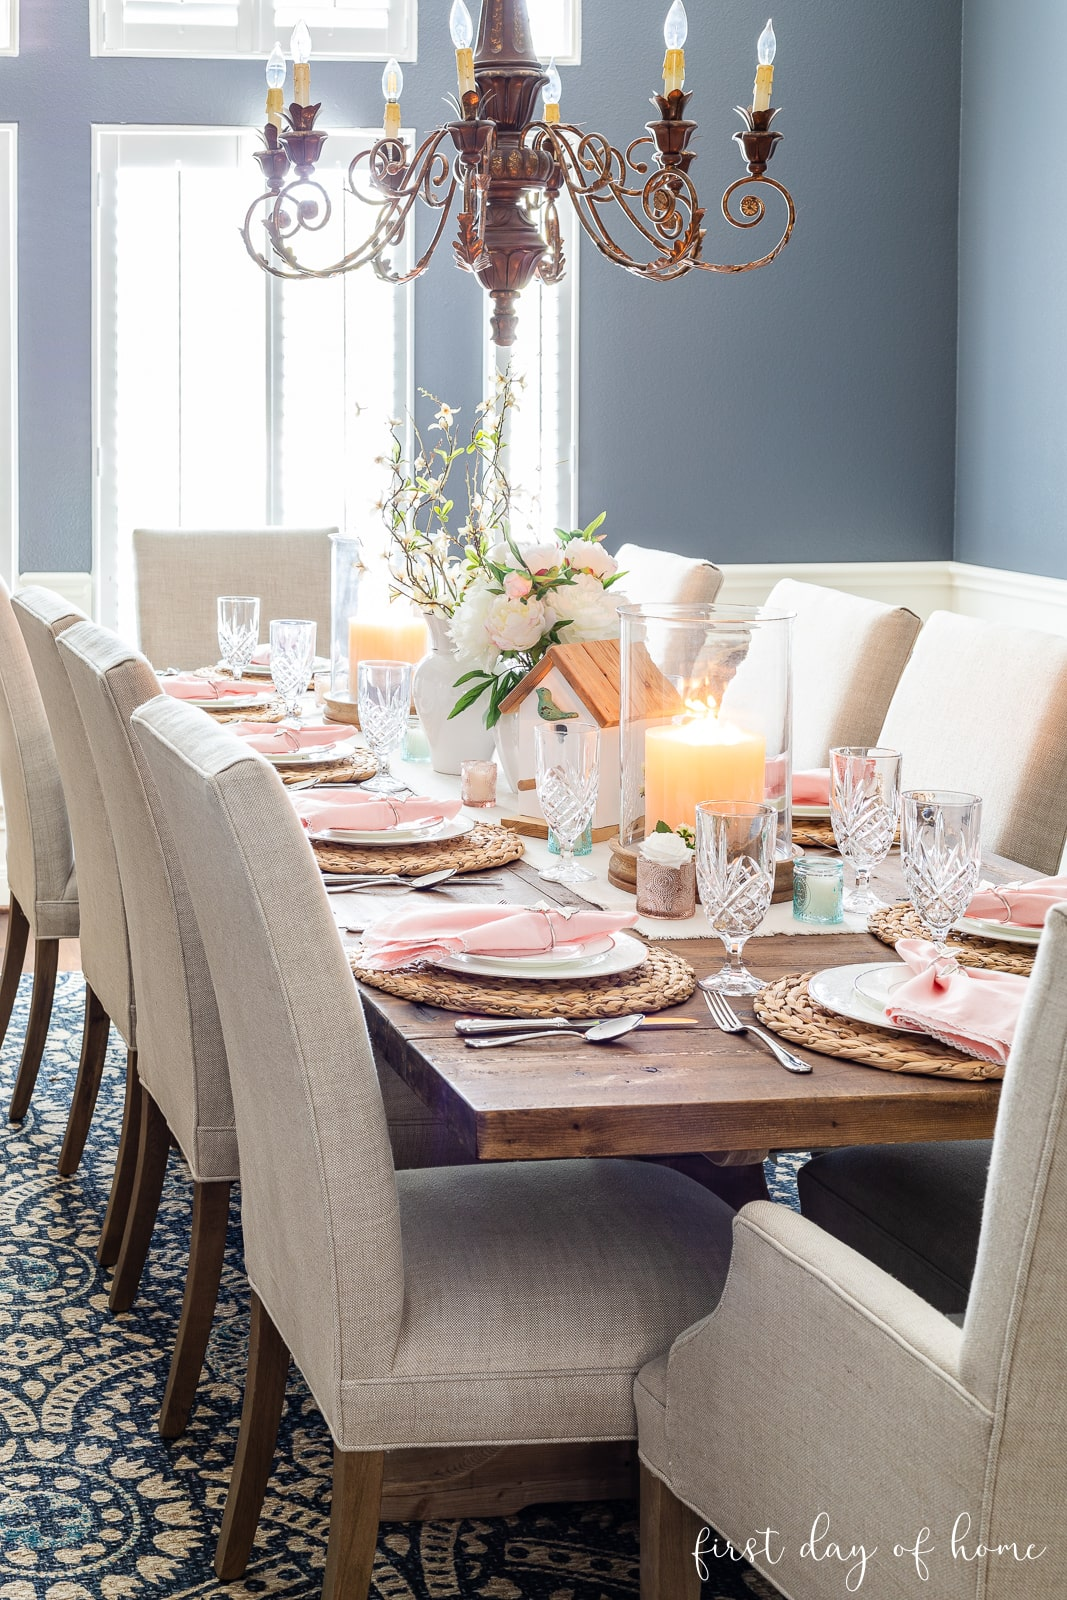 Dining room with spring table decor and pillar candles